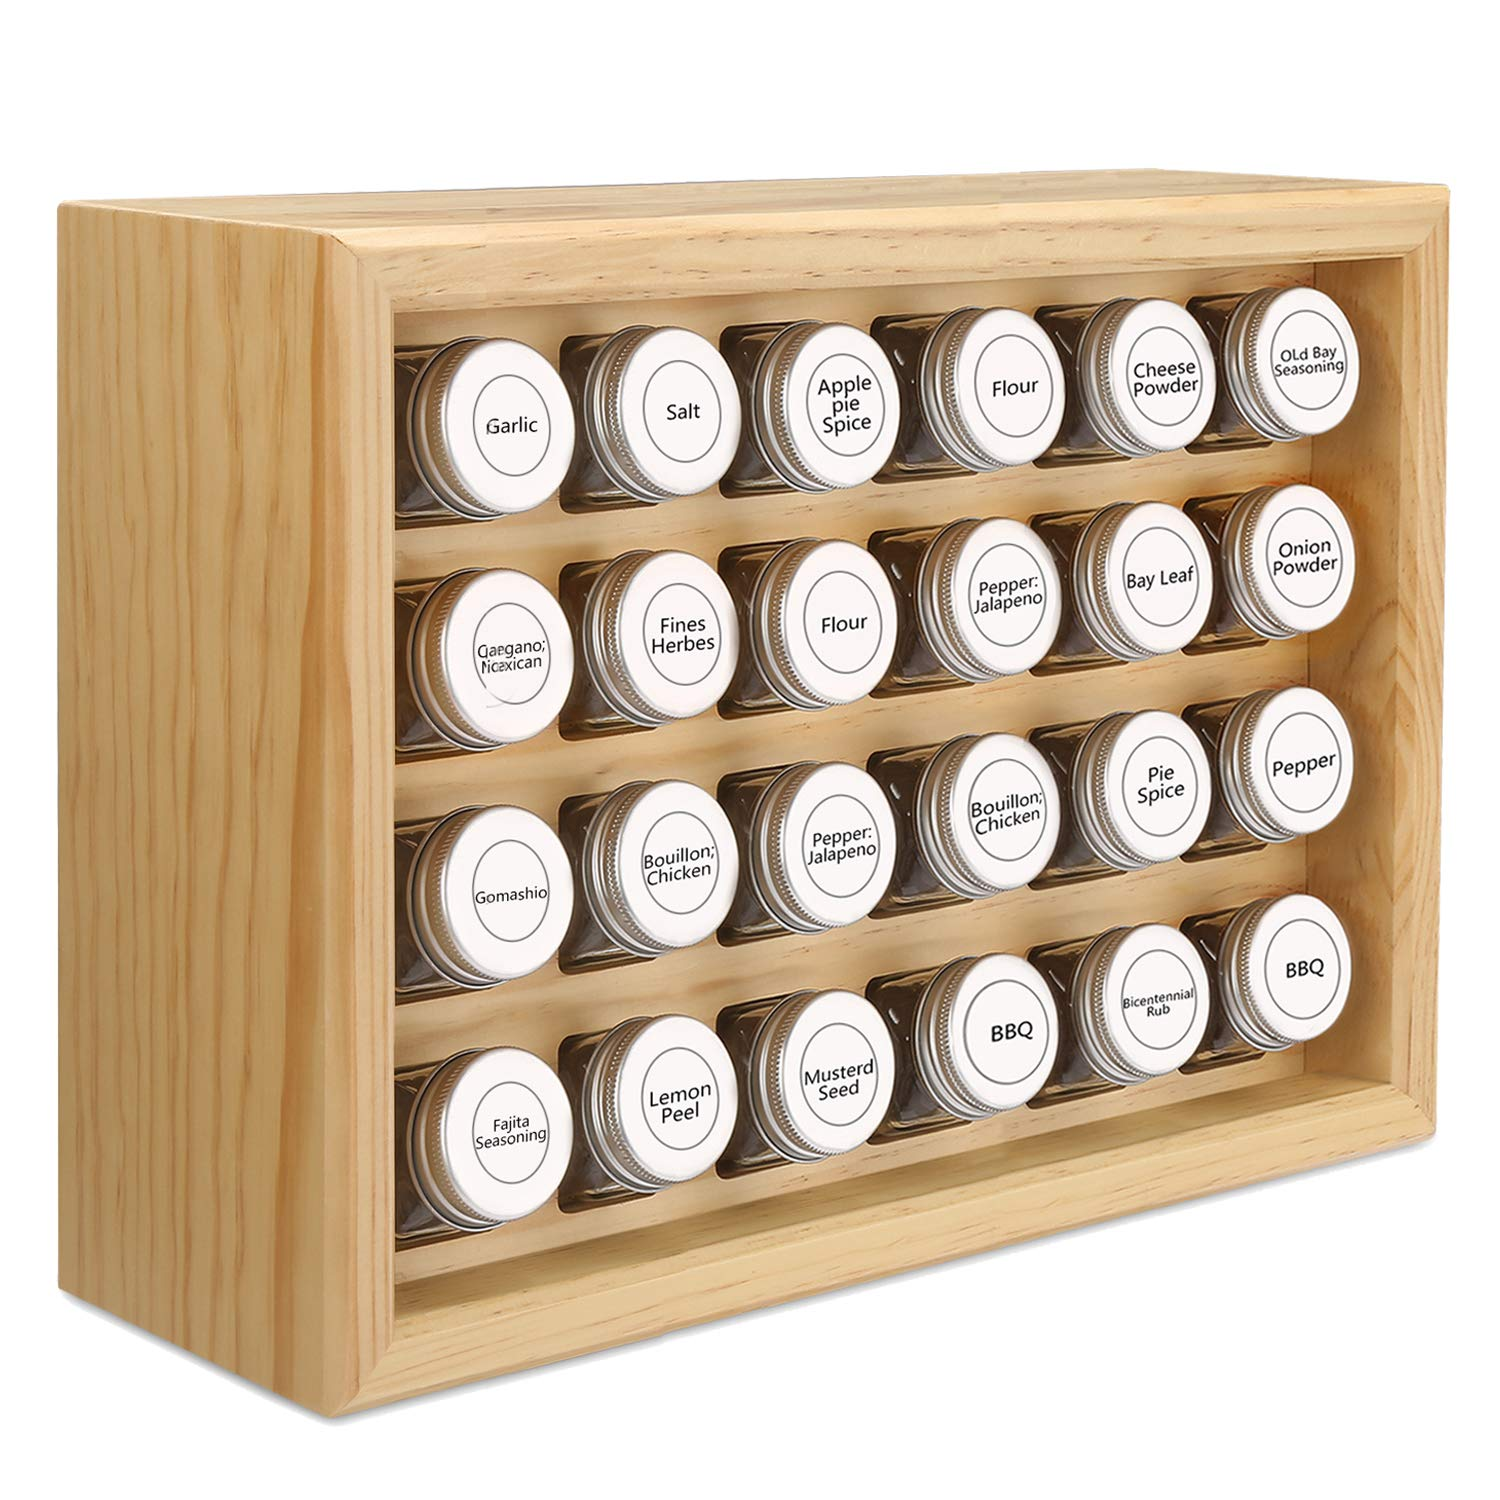 100% Solid Wood Spice Rack, Includes 24 4oz Clear Glass Jars,315 Pre-Printed Labels.Fully Assembled (Beige, 24 Jar) by Welcare